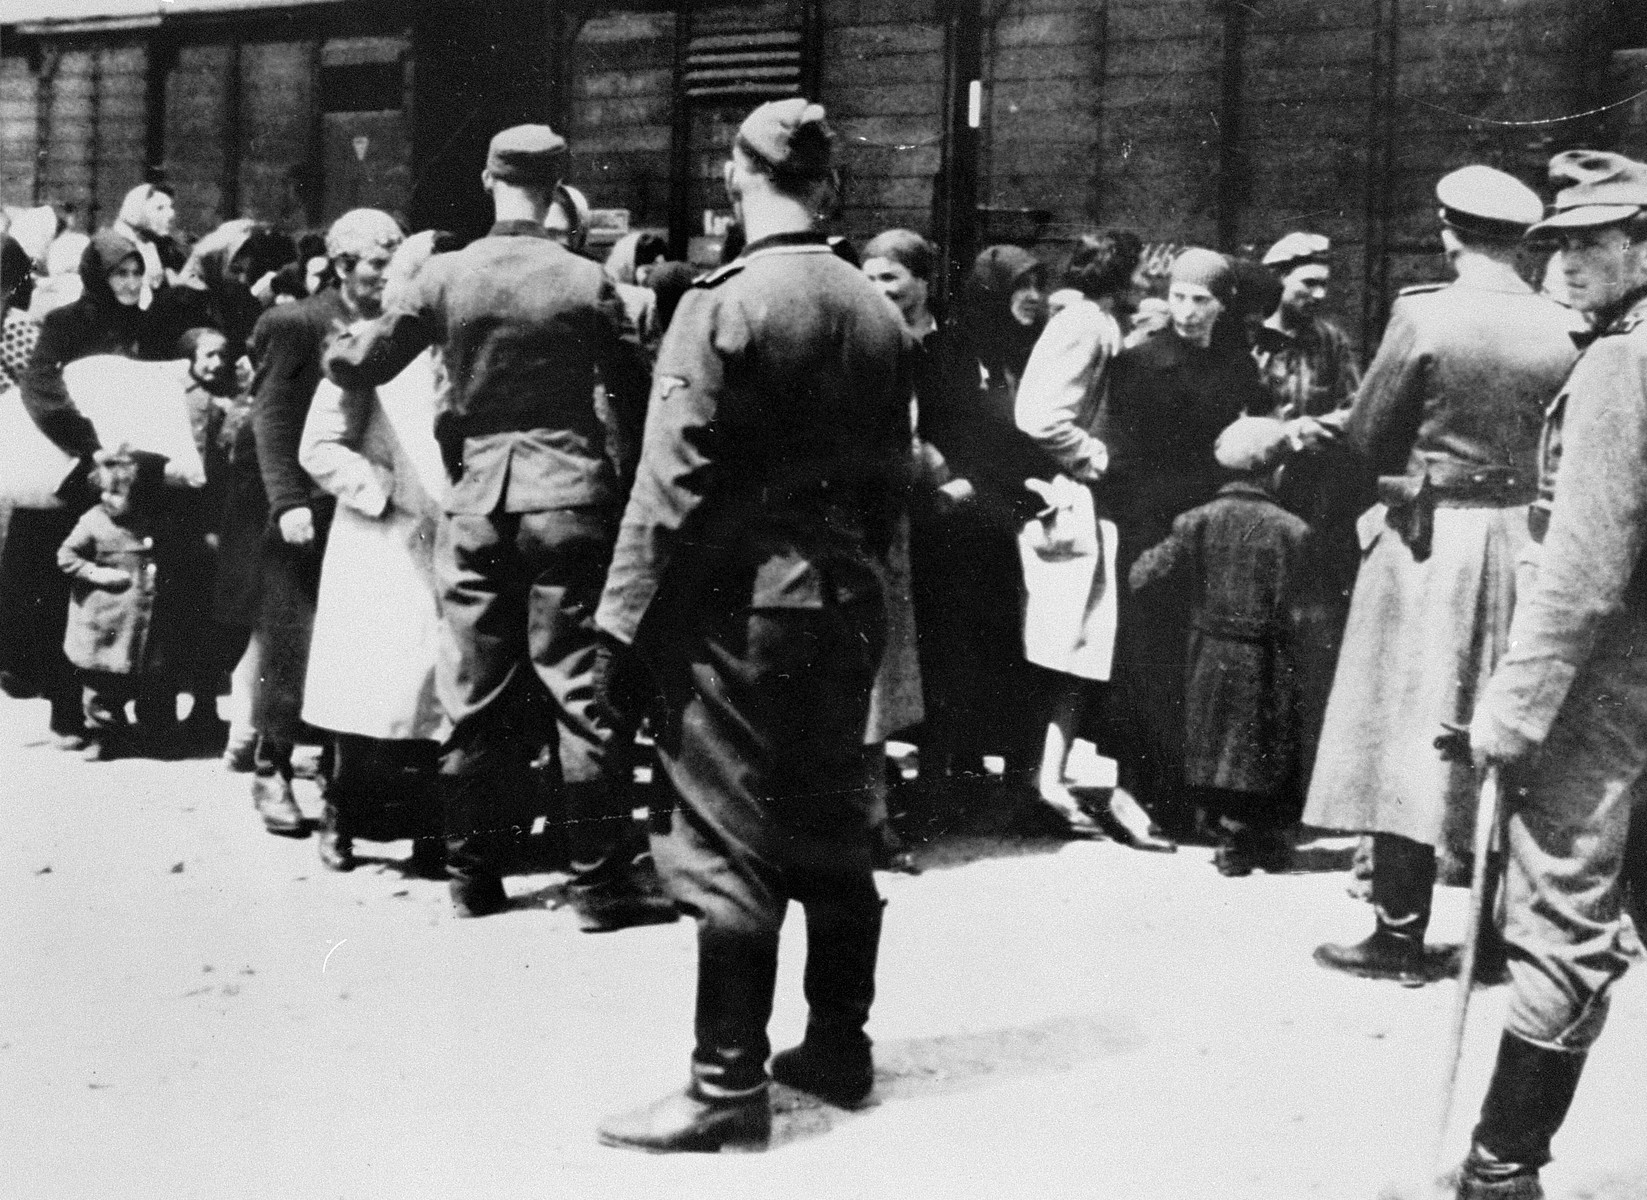 SS guards supervise the arrival of a transport of Jews from Subcarpathian Rus to Auschwitz-Birkenau.   Pictured on the far right is SS Wachmann Stefan Baretzki.  During the Frankfurt trials (1963-1965) this photograph was used as evidence against Baretzki.